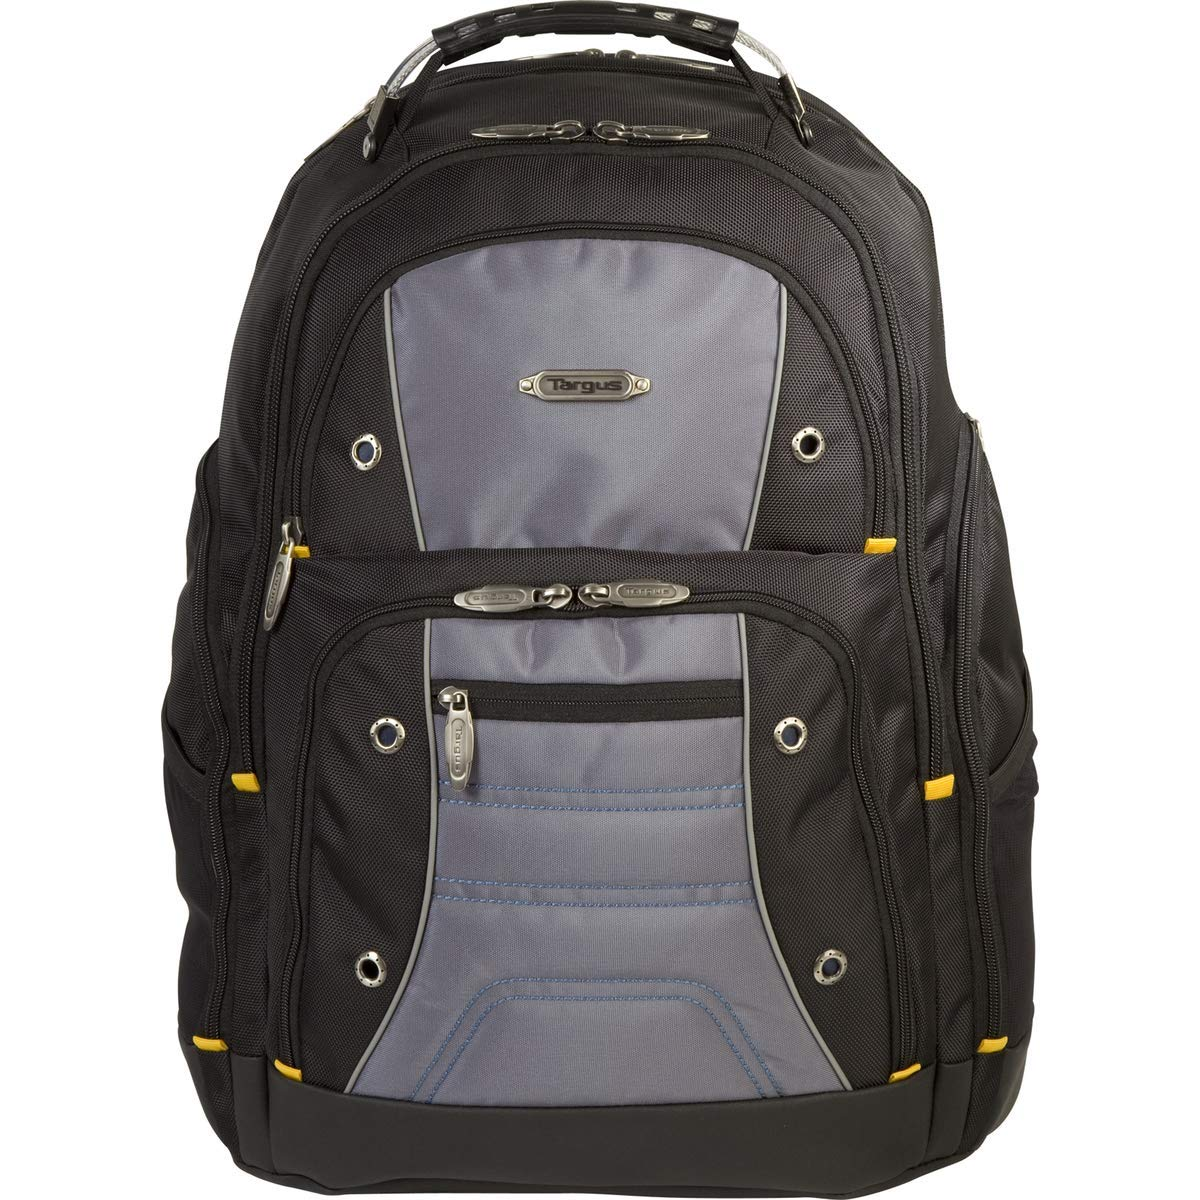 Targus Drifter II for Professional Business Commuter Backpack for 16-Inch Laptop, Black/Gray (TSB238US) by Targus